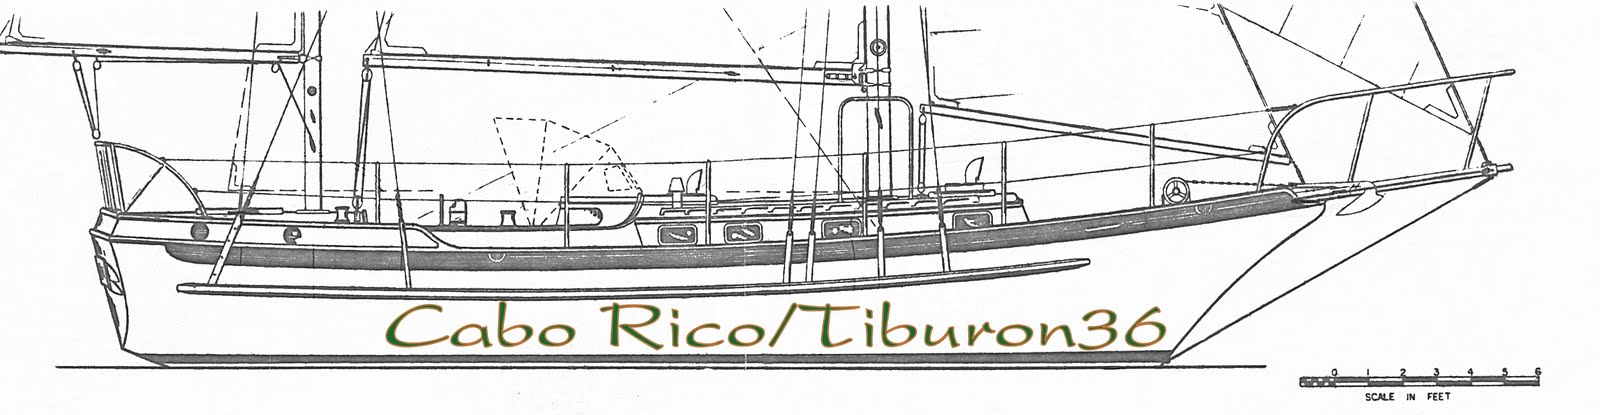 Cabo Rico_Tiburon36